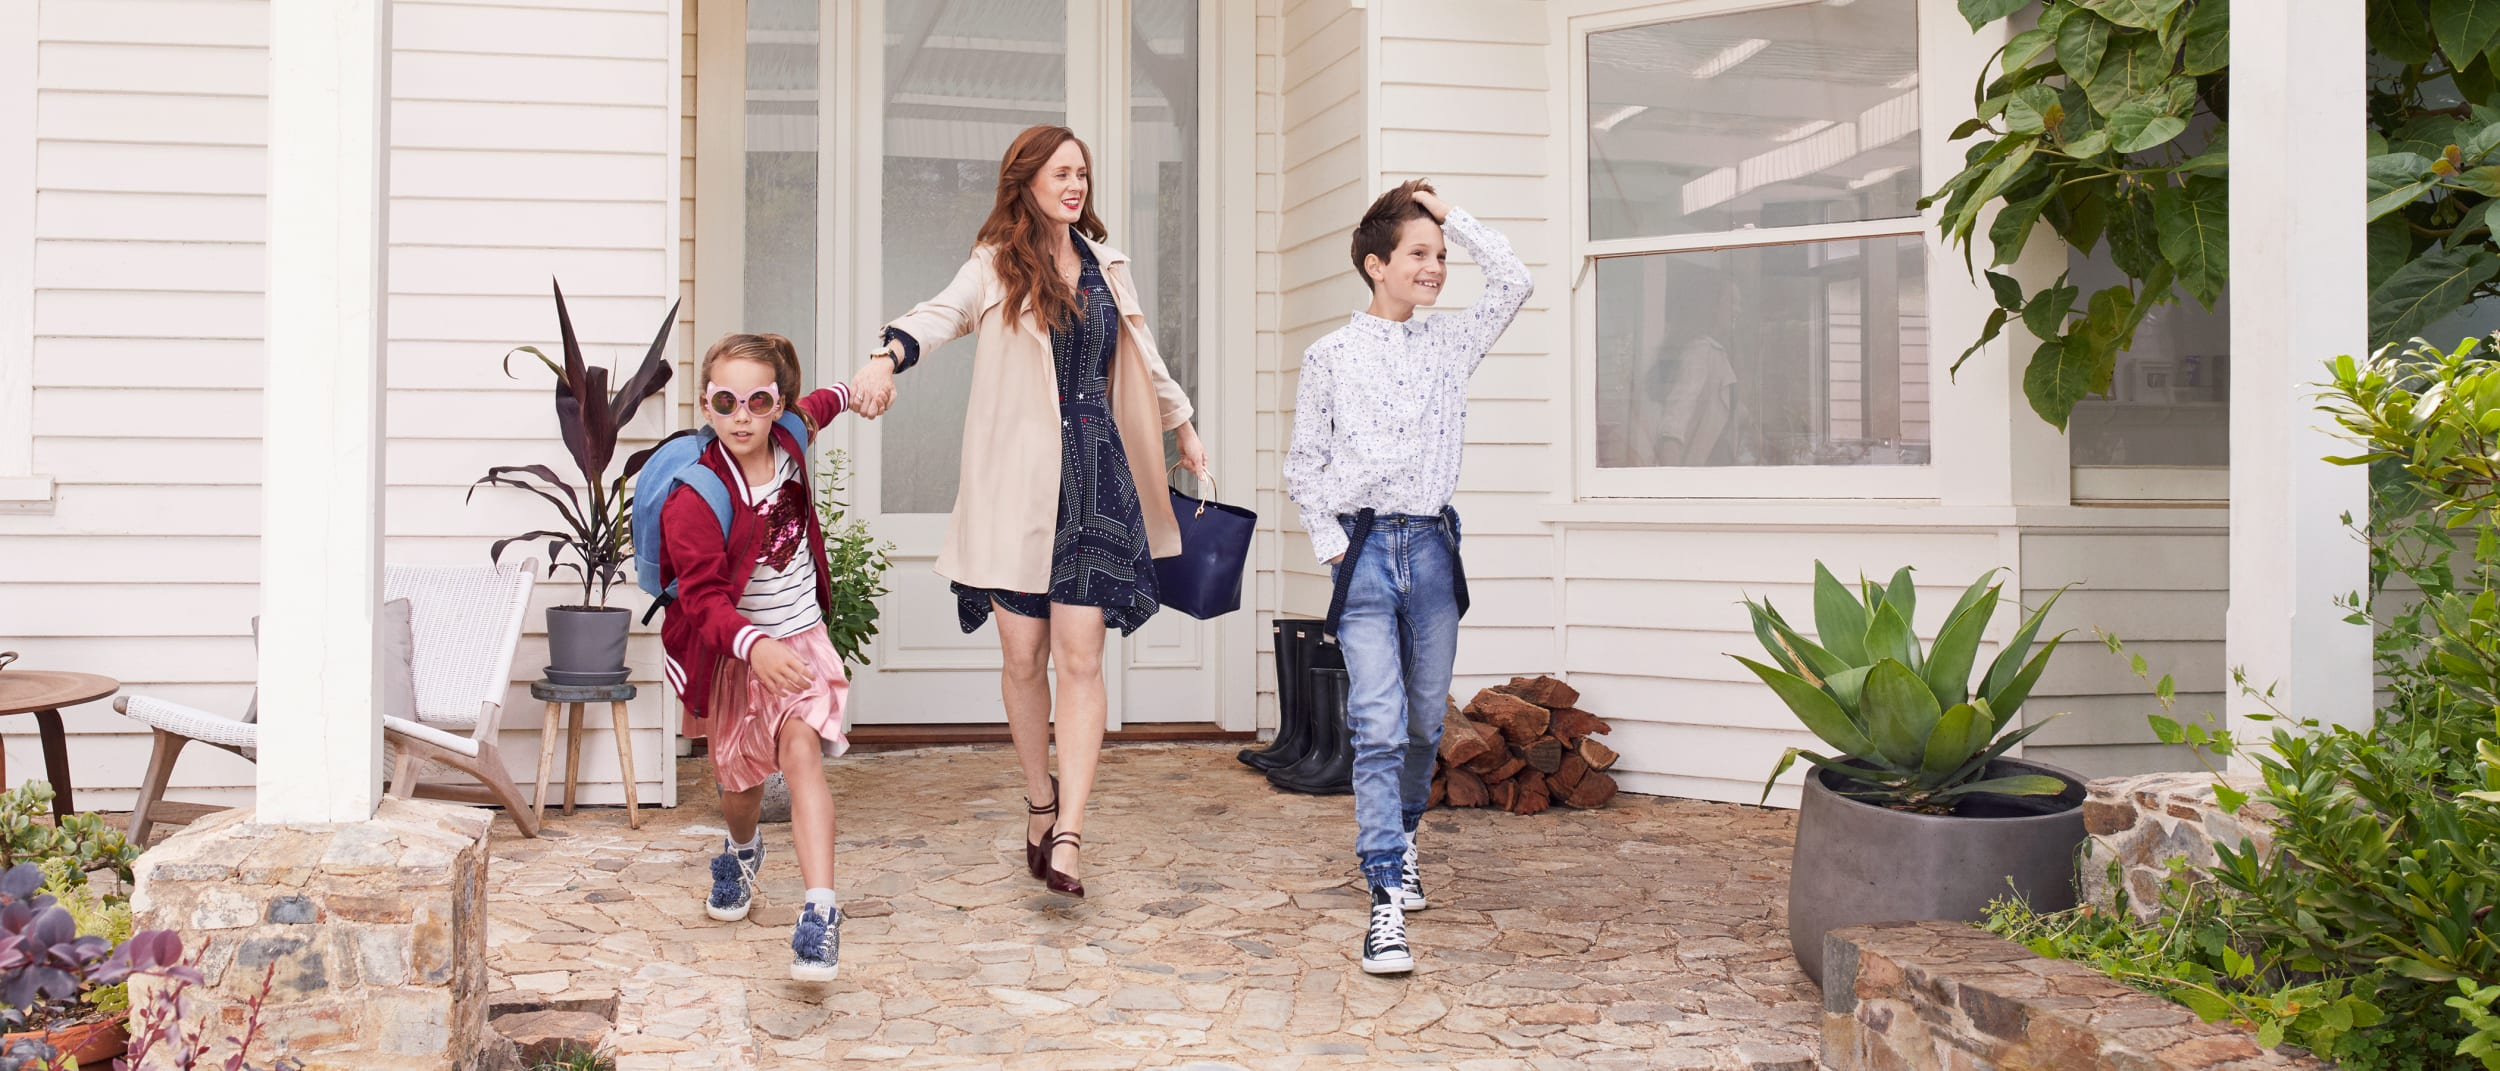 New season wardrobe updates for your little ones